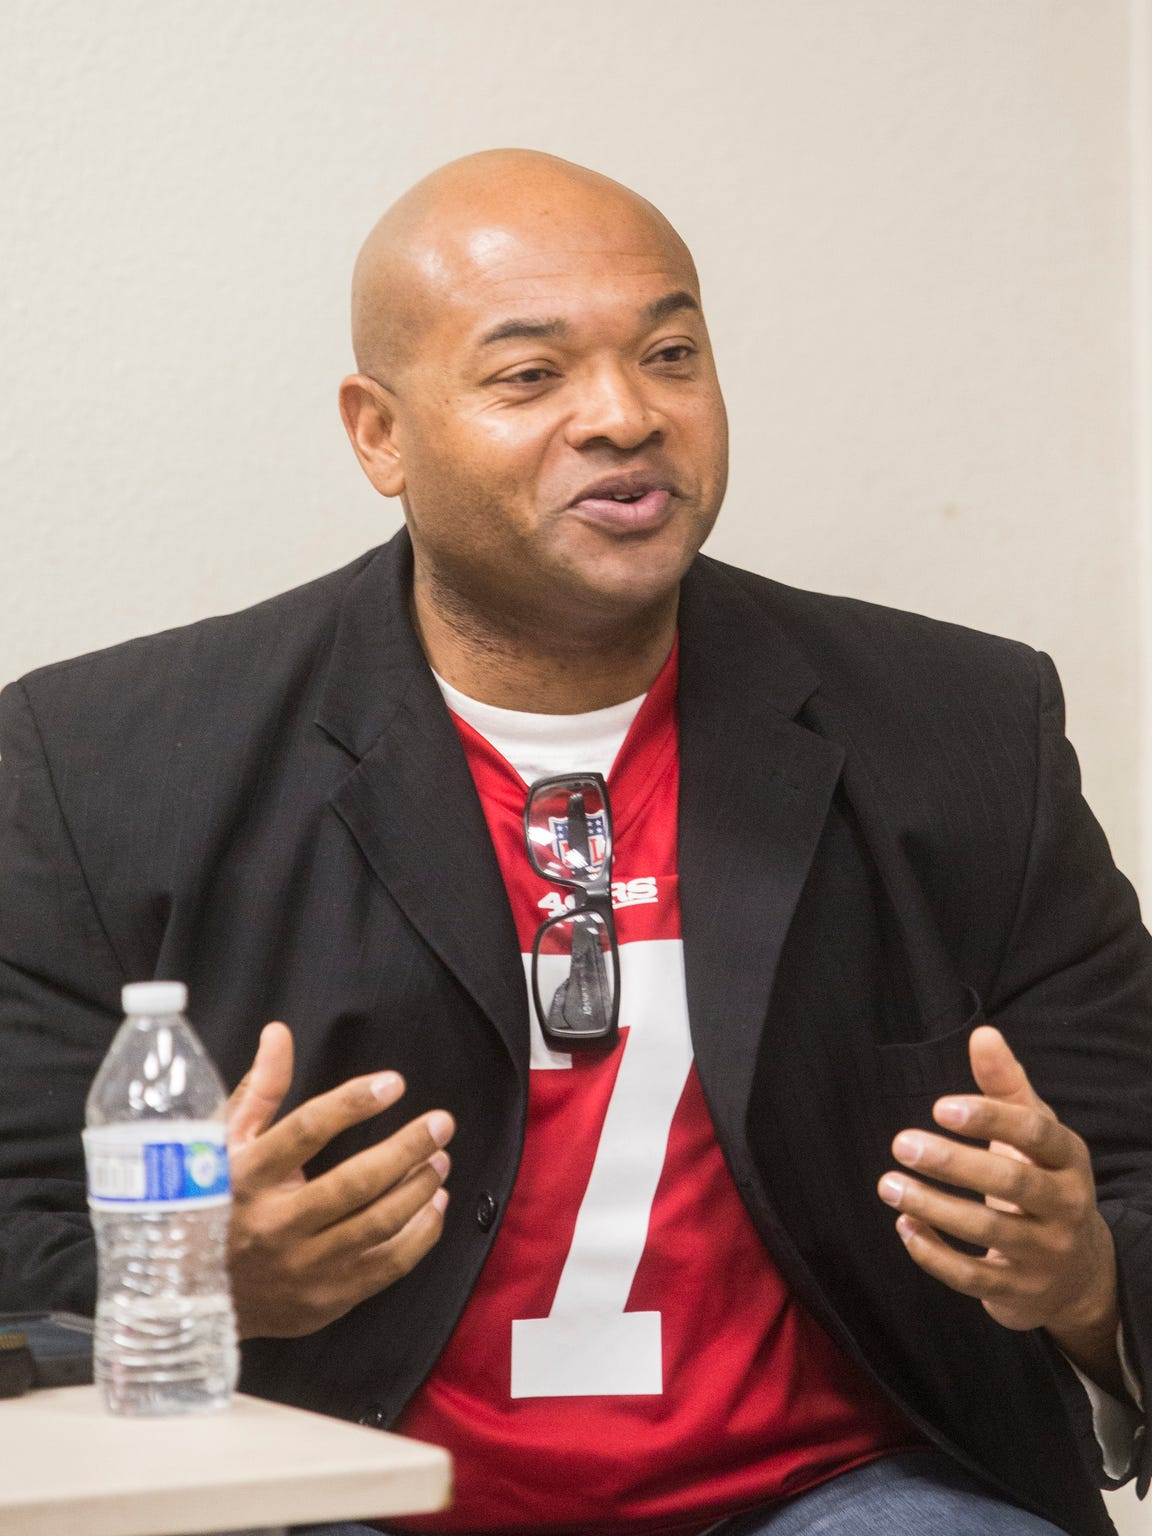 Waymond Fermon speaks during a panel discussing President Donald Trump and the National Football League hosted by the Democratic Women of the Desert at the James O. Jessie center in Palm Springs on November 14, 2017.